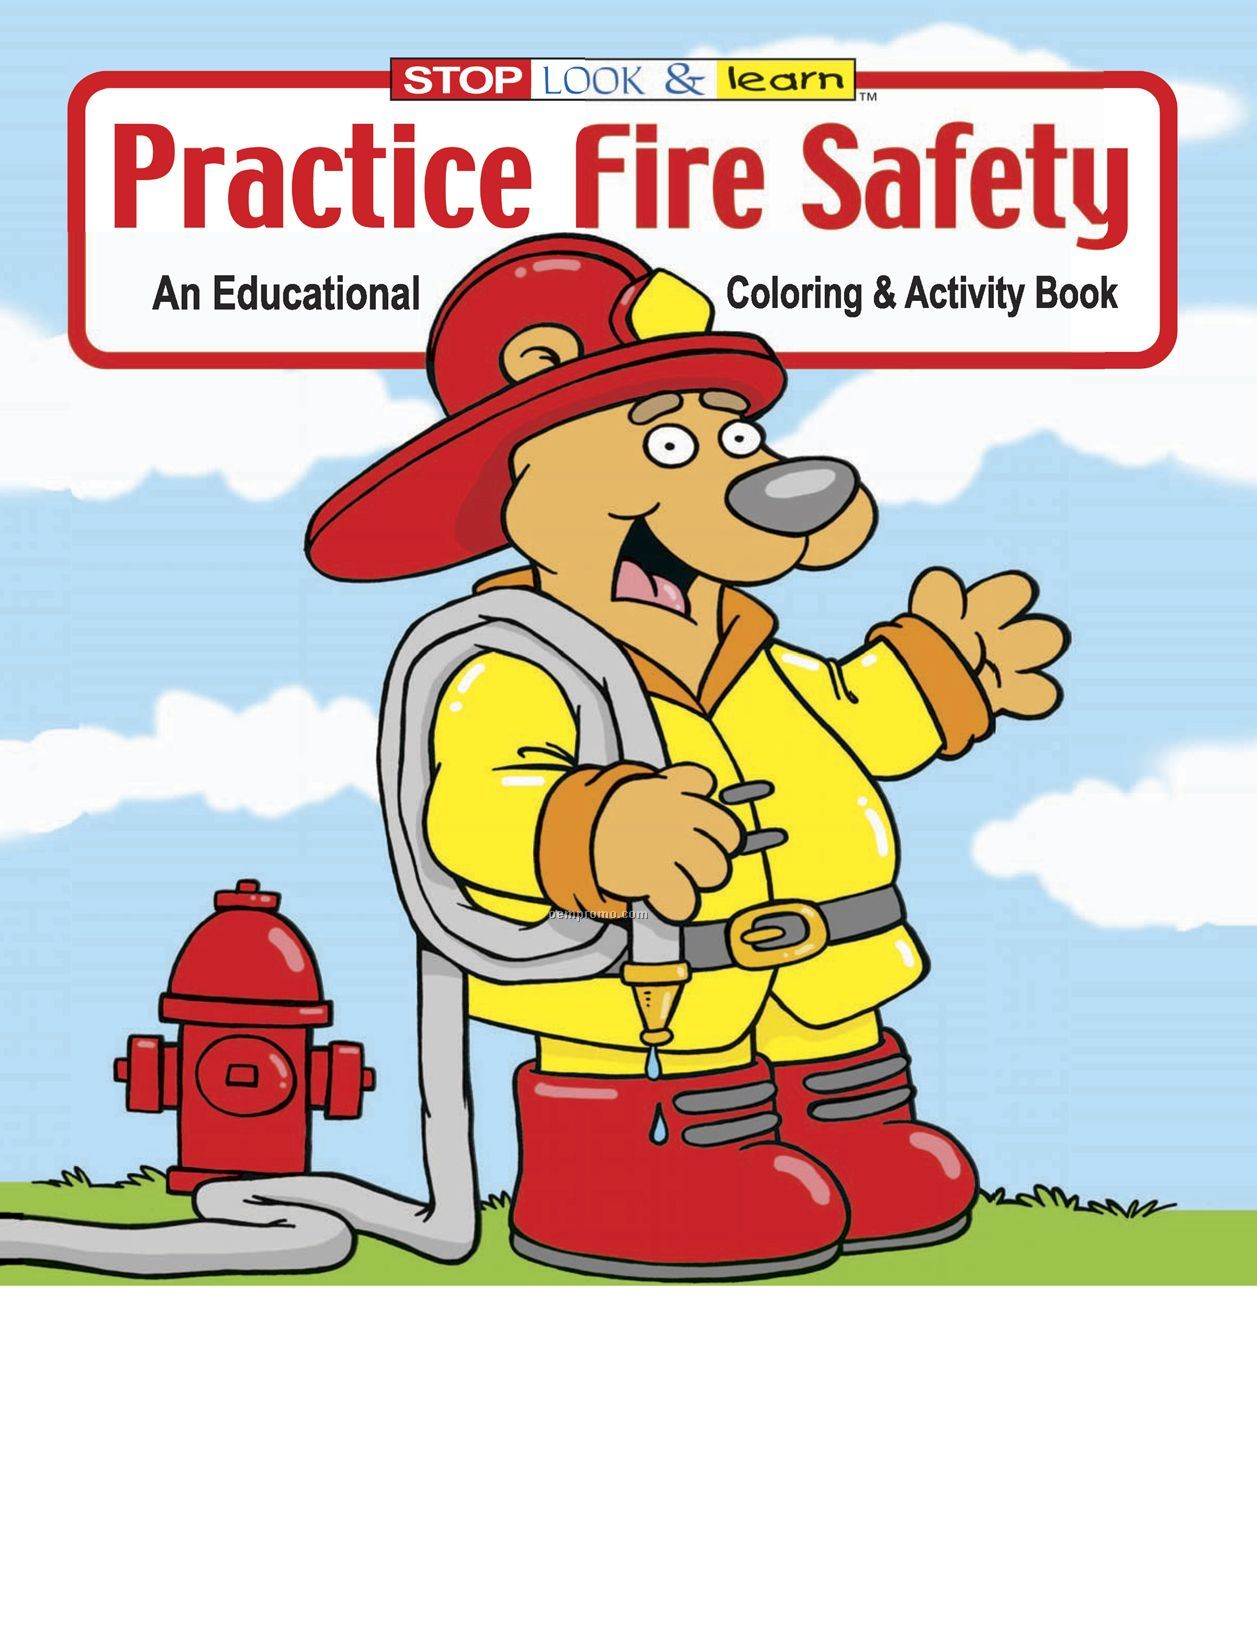 Practice Fire Safety Coloring Book